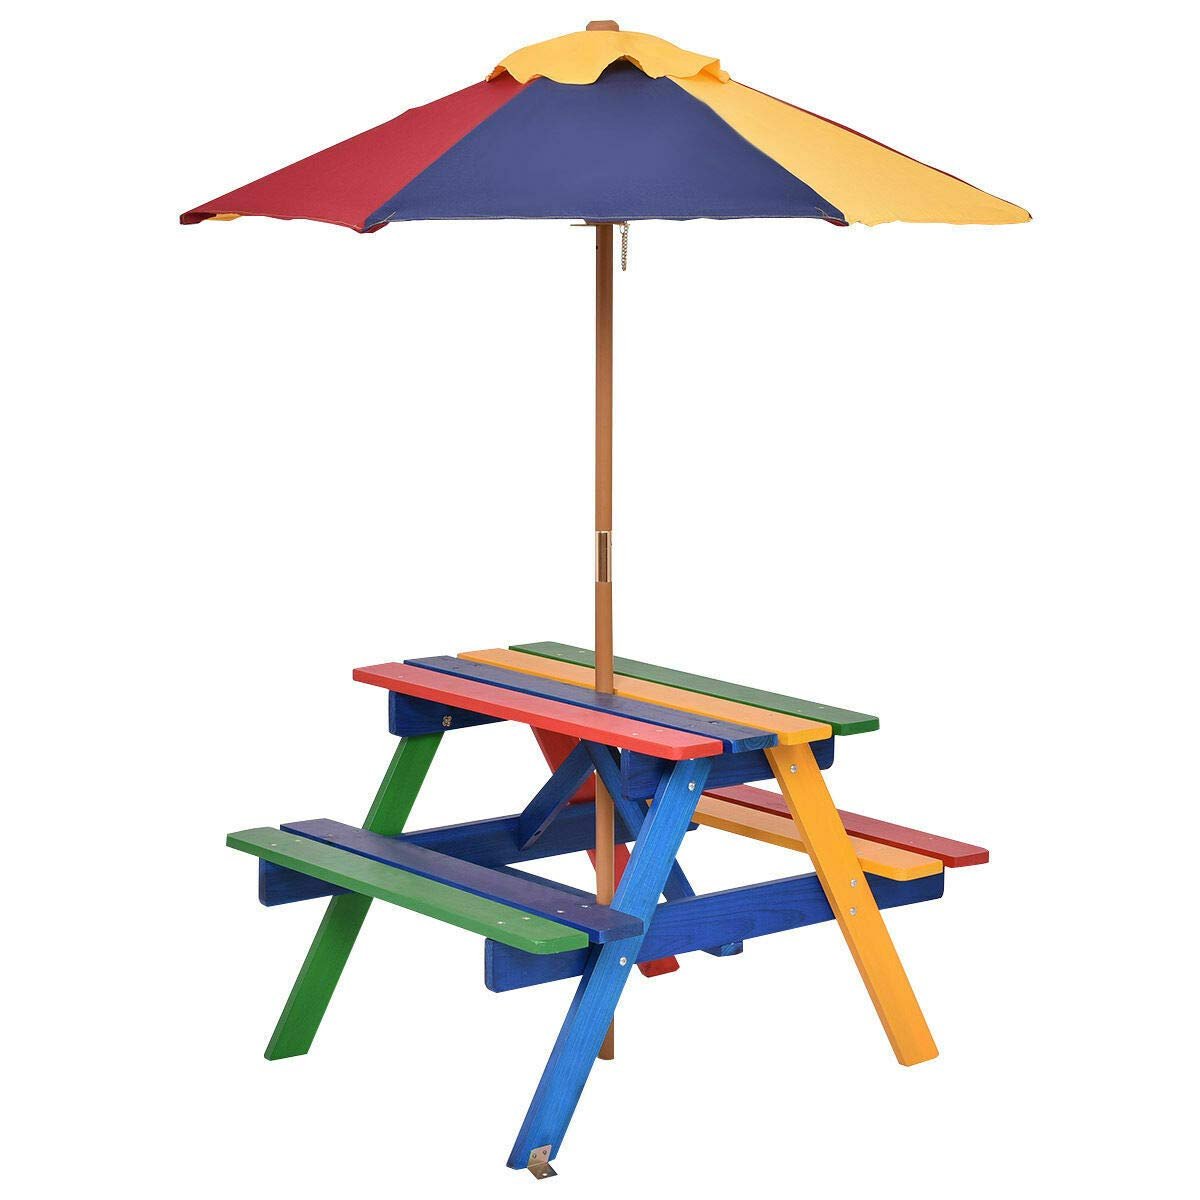 Heavens Tvcz Beach Table Kids Picnic w/Umbrella Portable Premium Eco-Friendly Yard Folding Children Garden Outdoor 4 Seat for Play and Relax with This Wooden Picnic Table Set